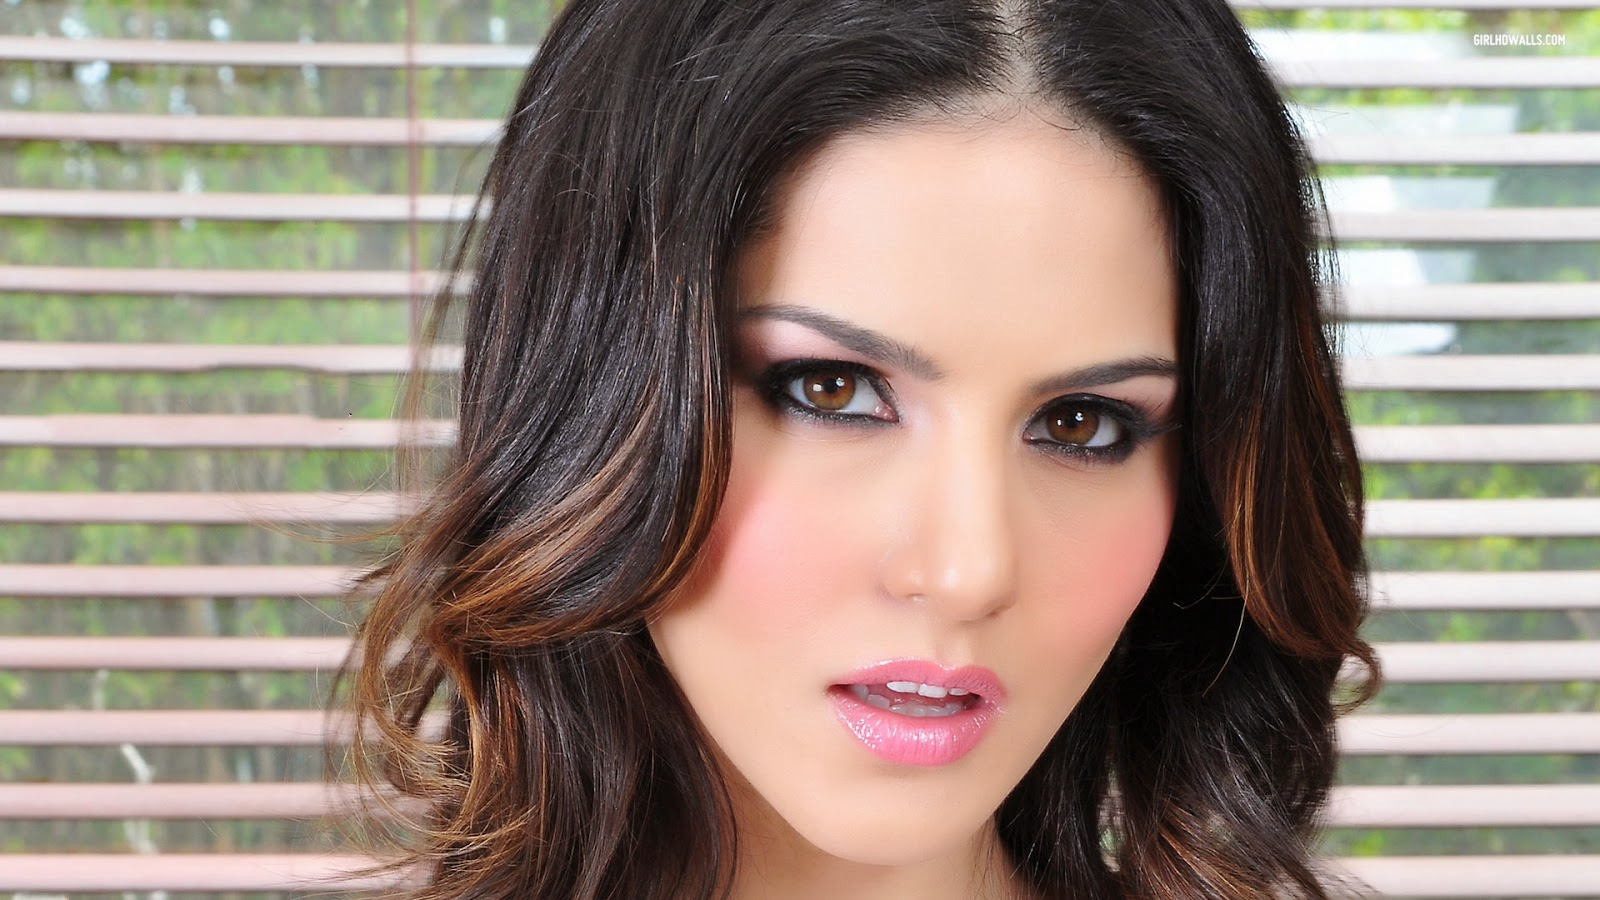 Sunny Leone Hd Mobile Wallpapers - Wallpaper Cave